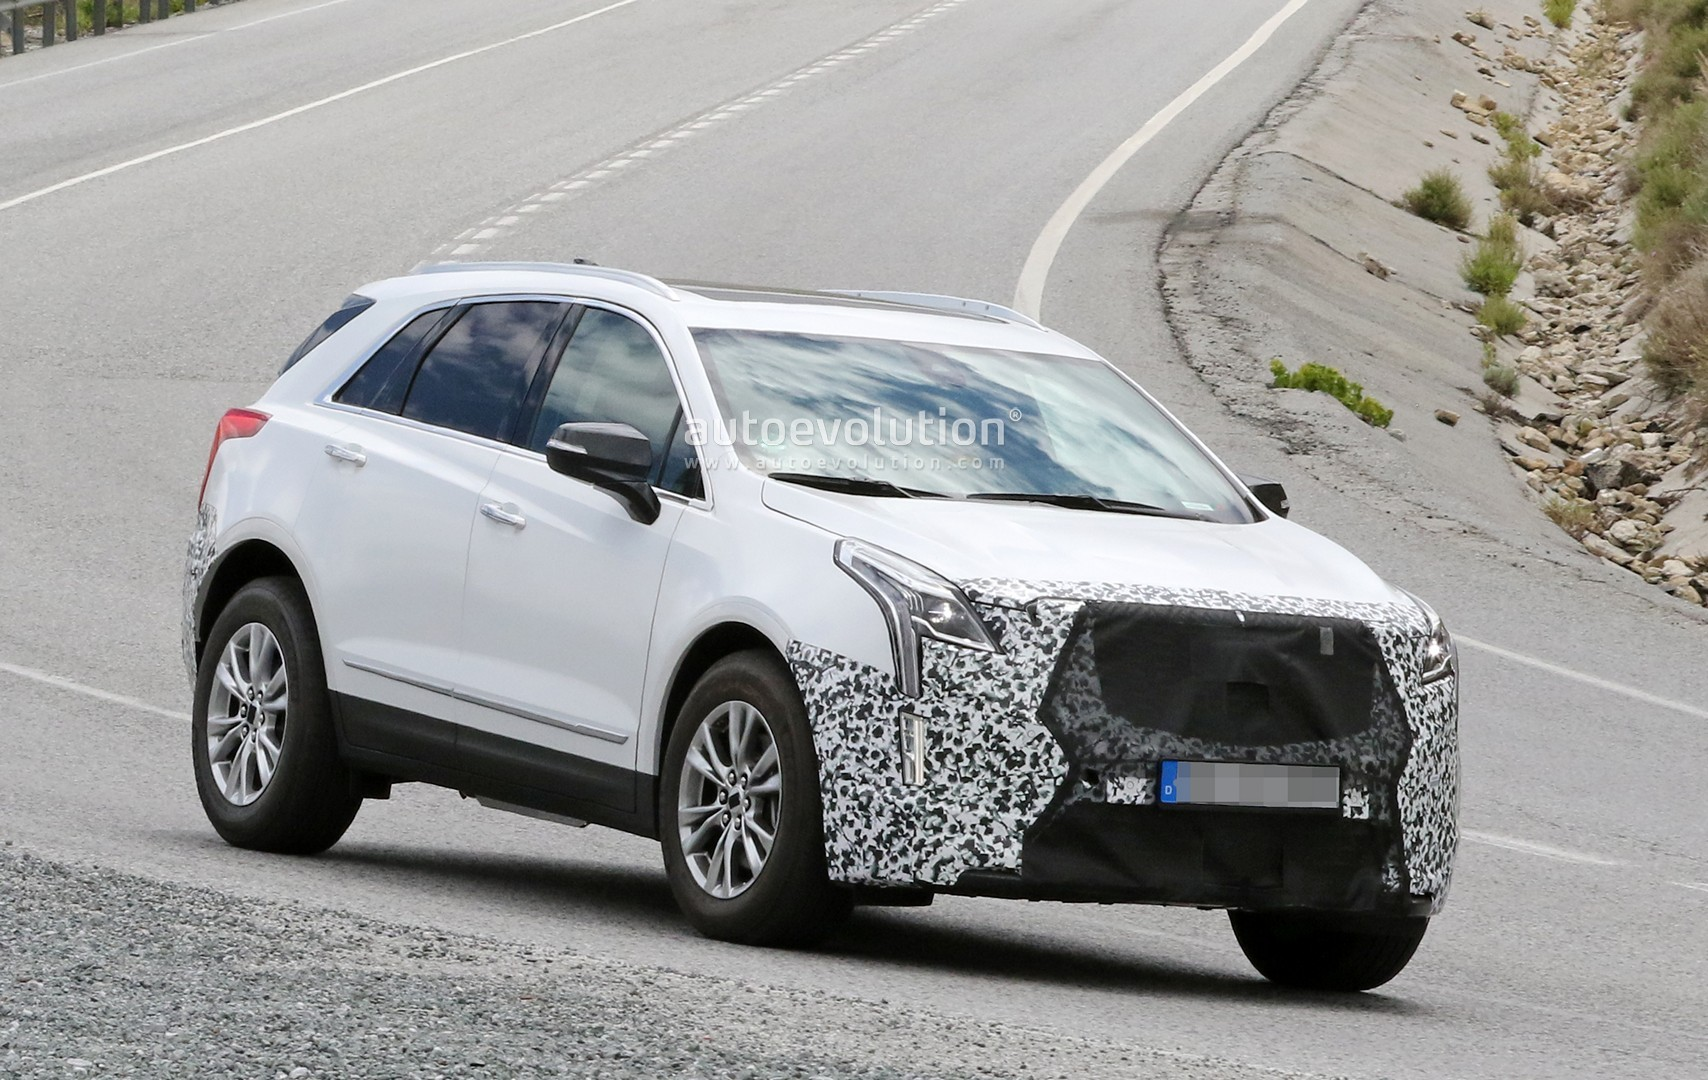 Spyshots: 2020 Cadillac XT5 Facelift Testing in Europe ...